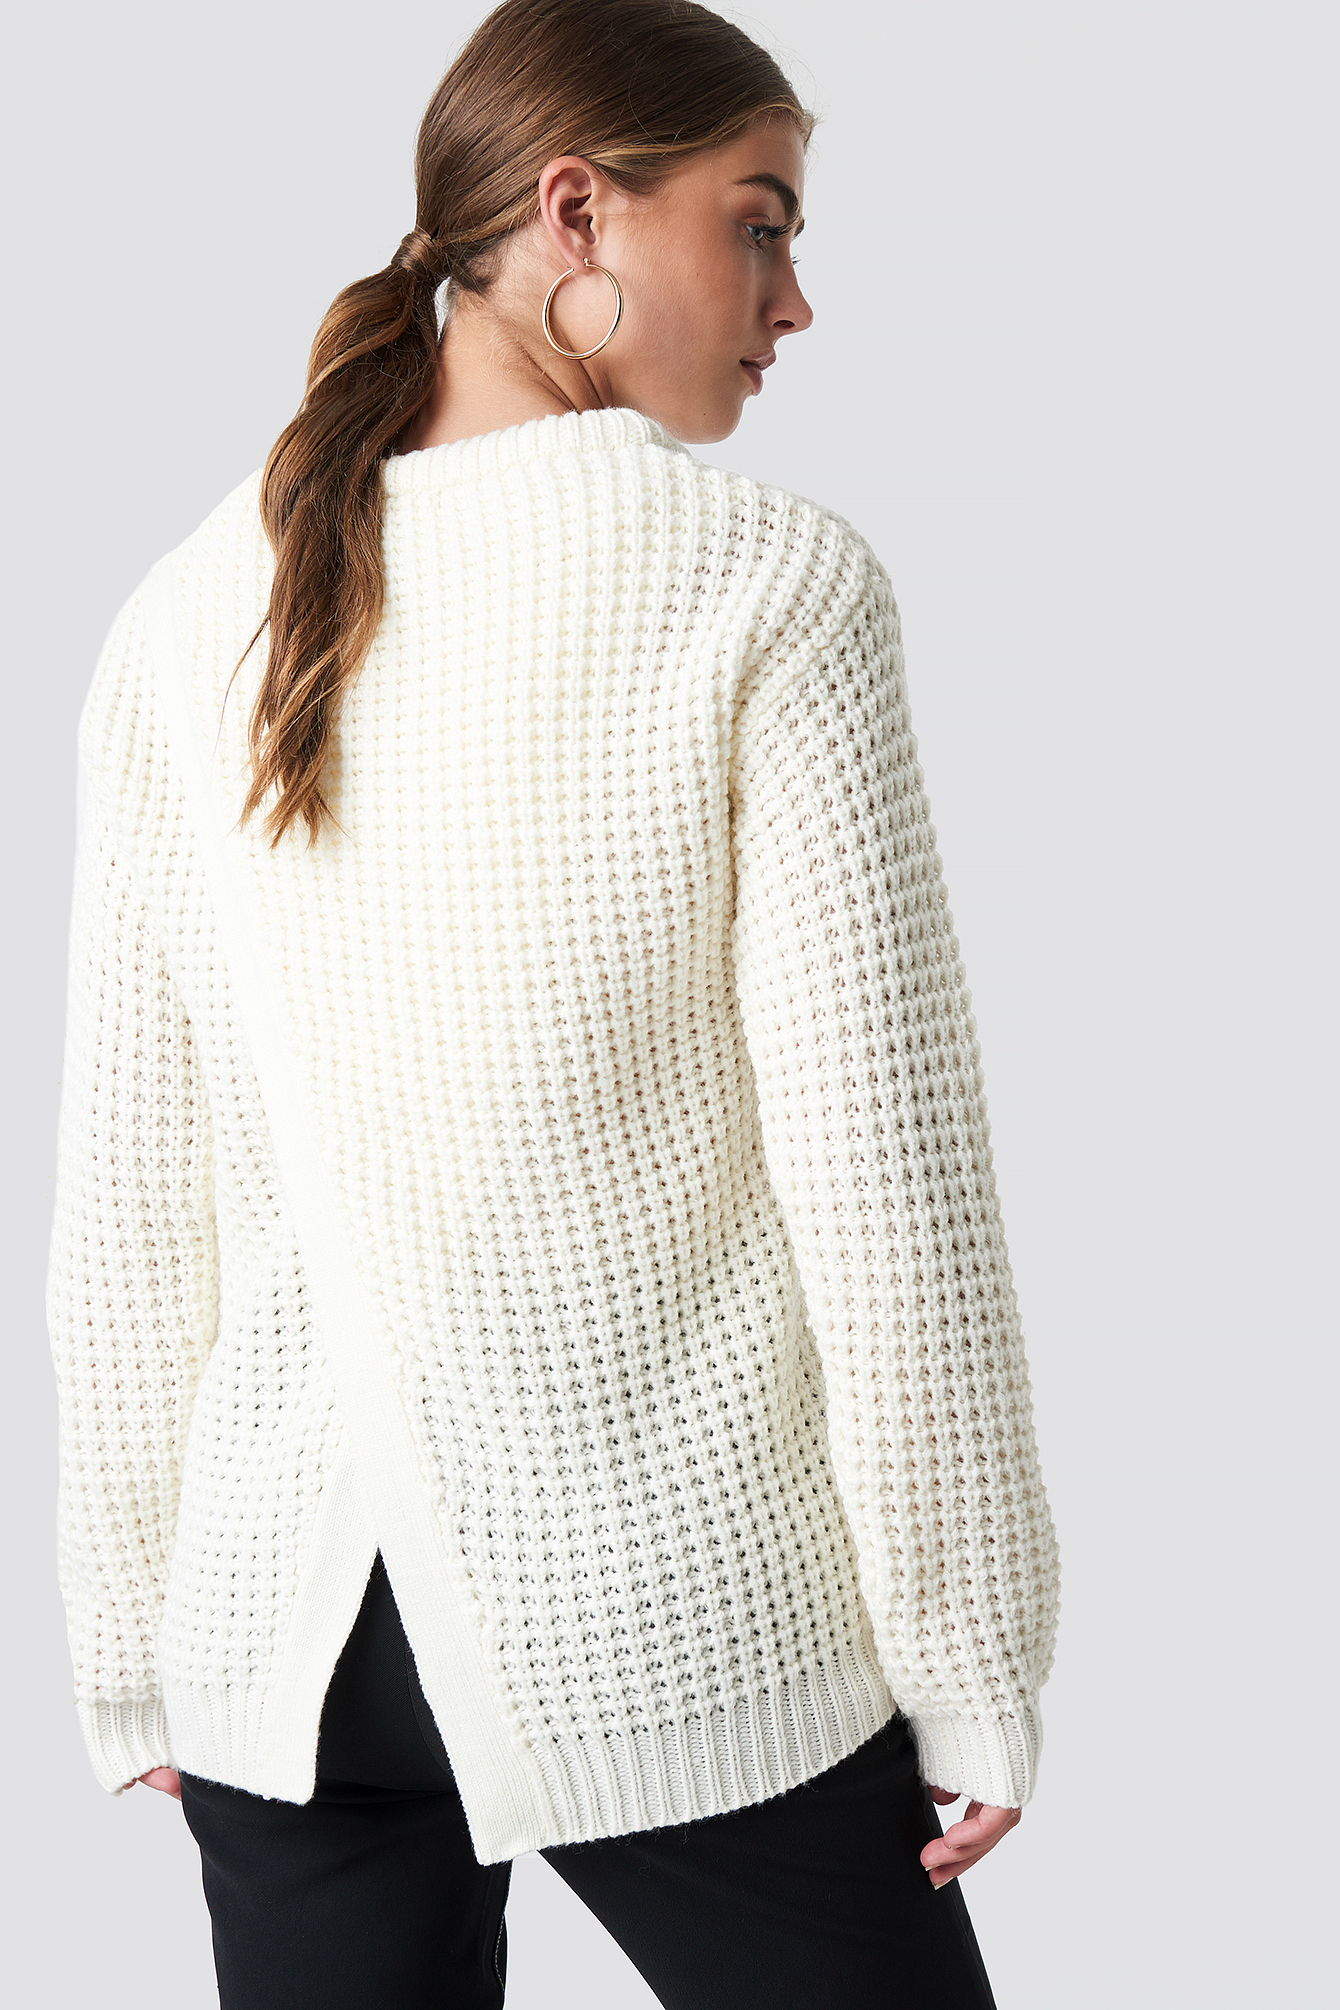 SAMIRA OPEN BACK KNIT - WHITE, OFFWHITE